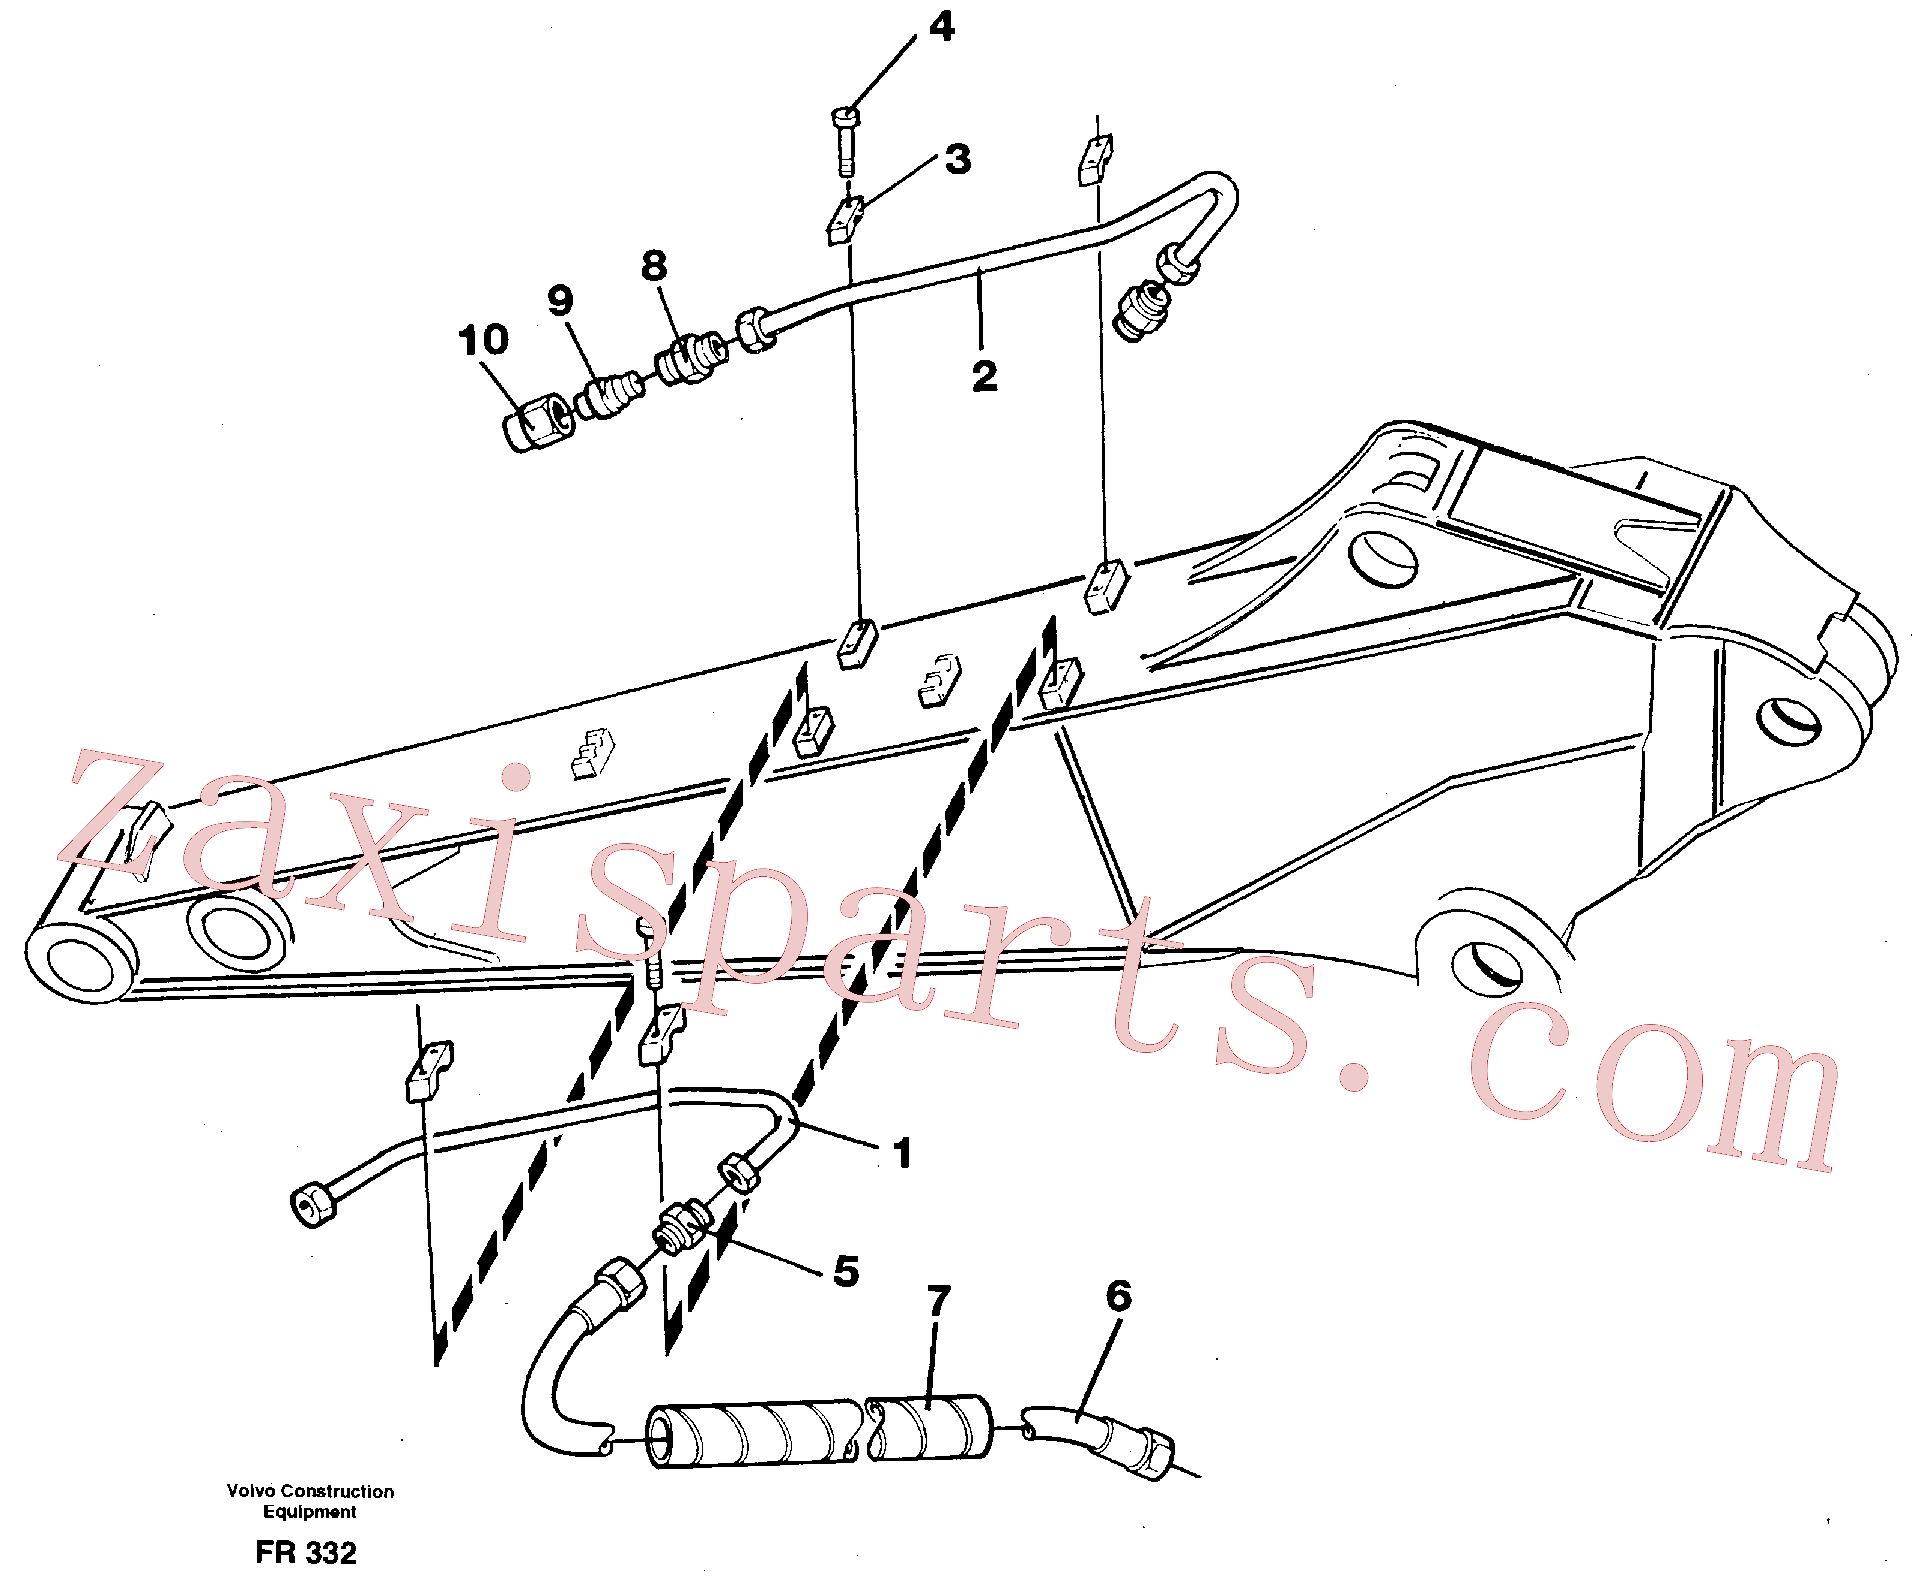 VOE14261809 for Volvo Slope bucket equipment on dipper arm, 1.9m/2.4m(FR332 assembly)